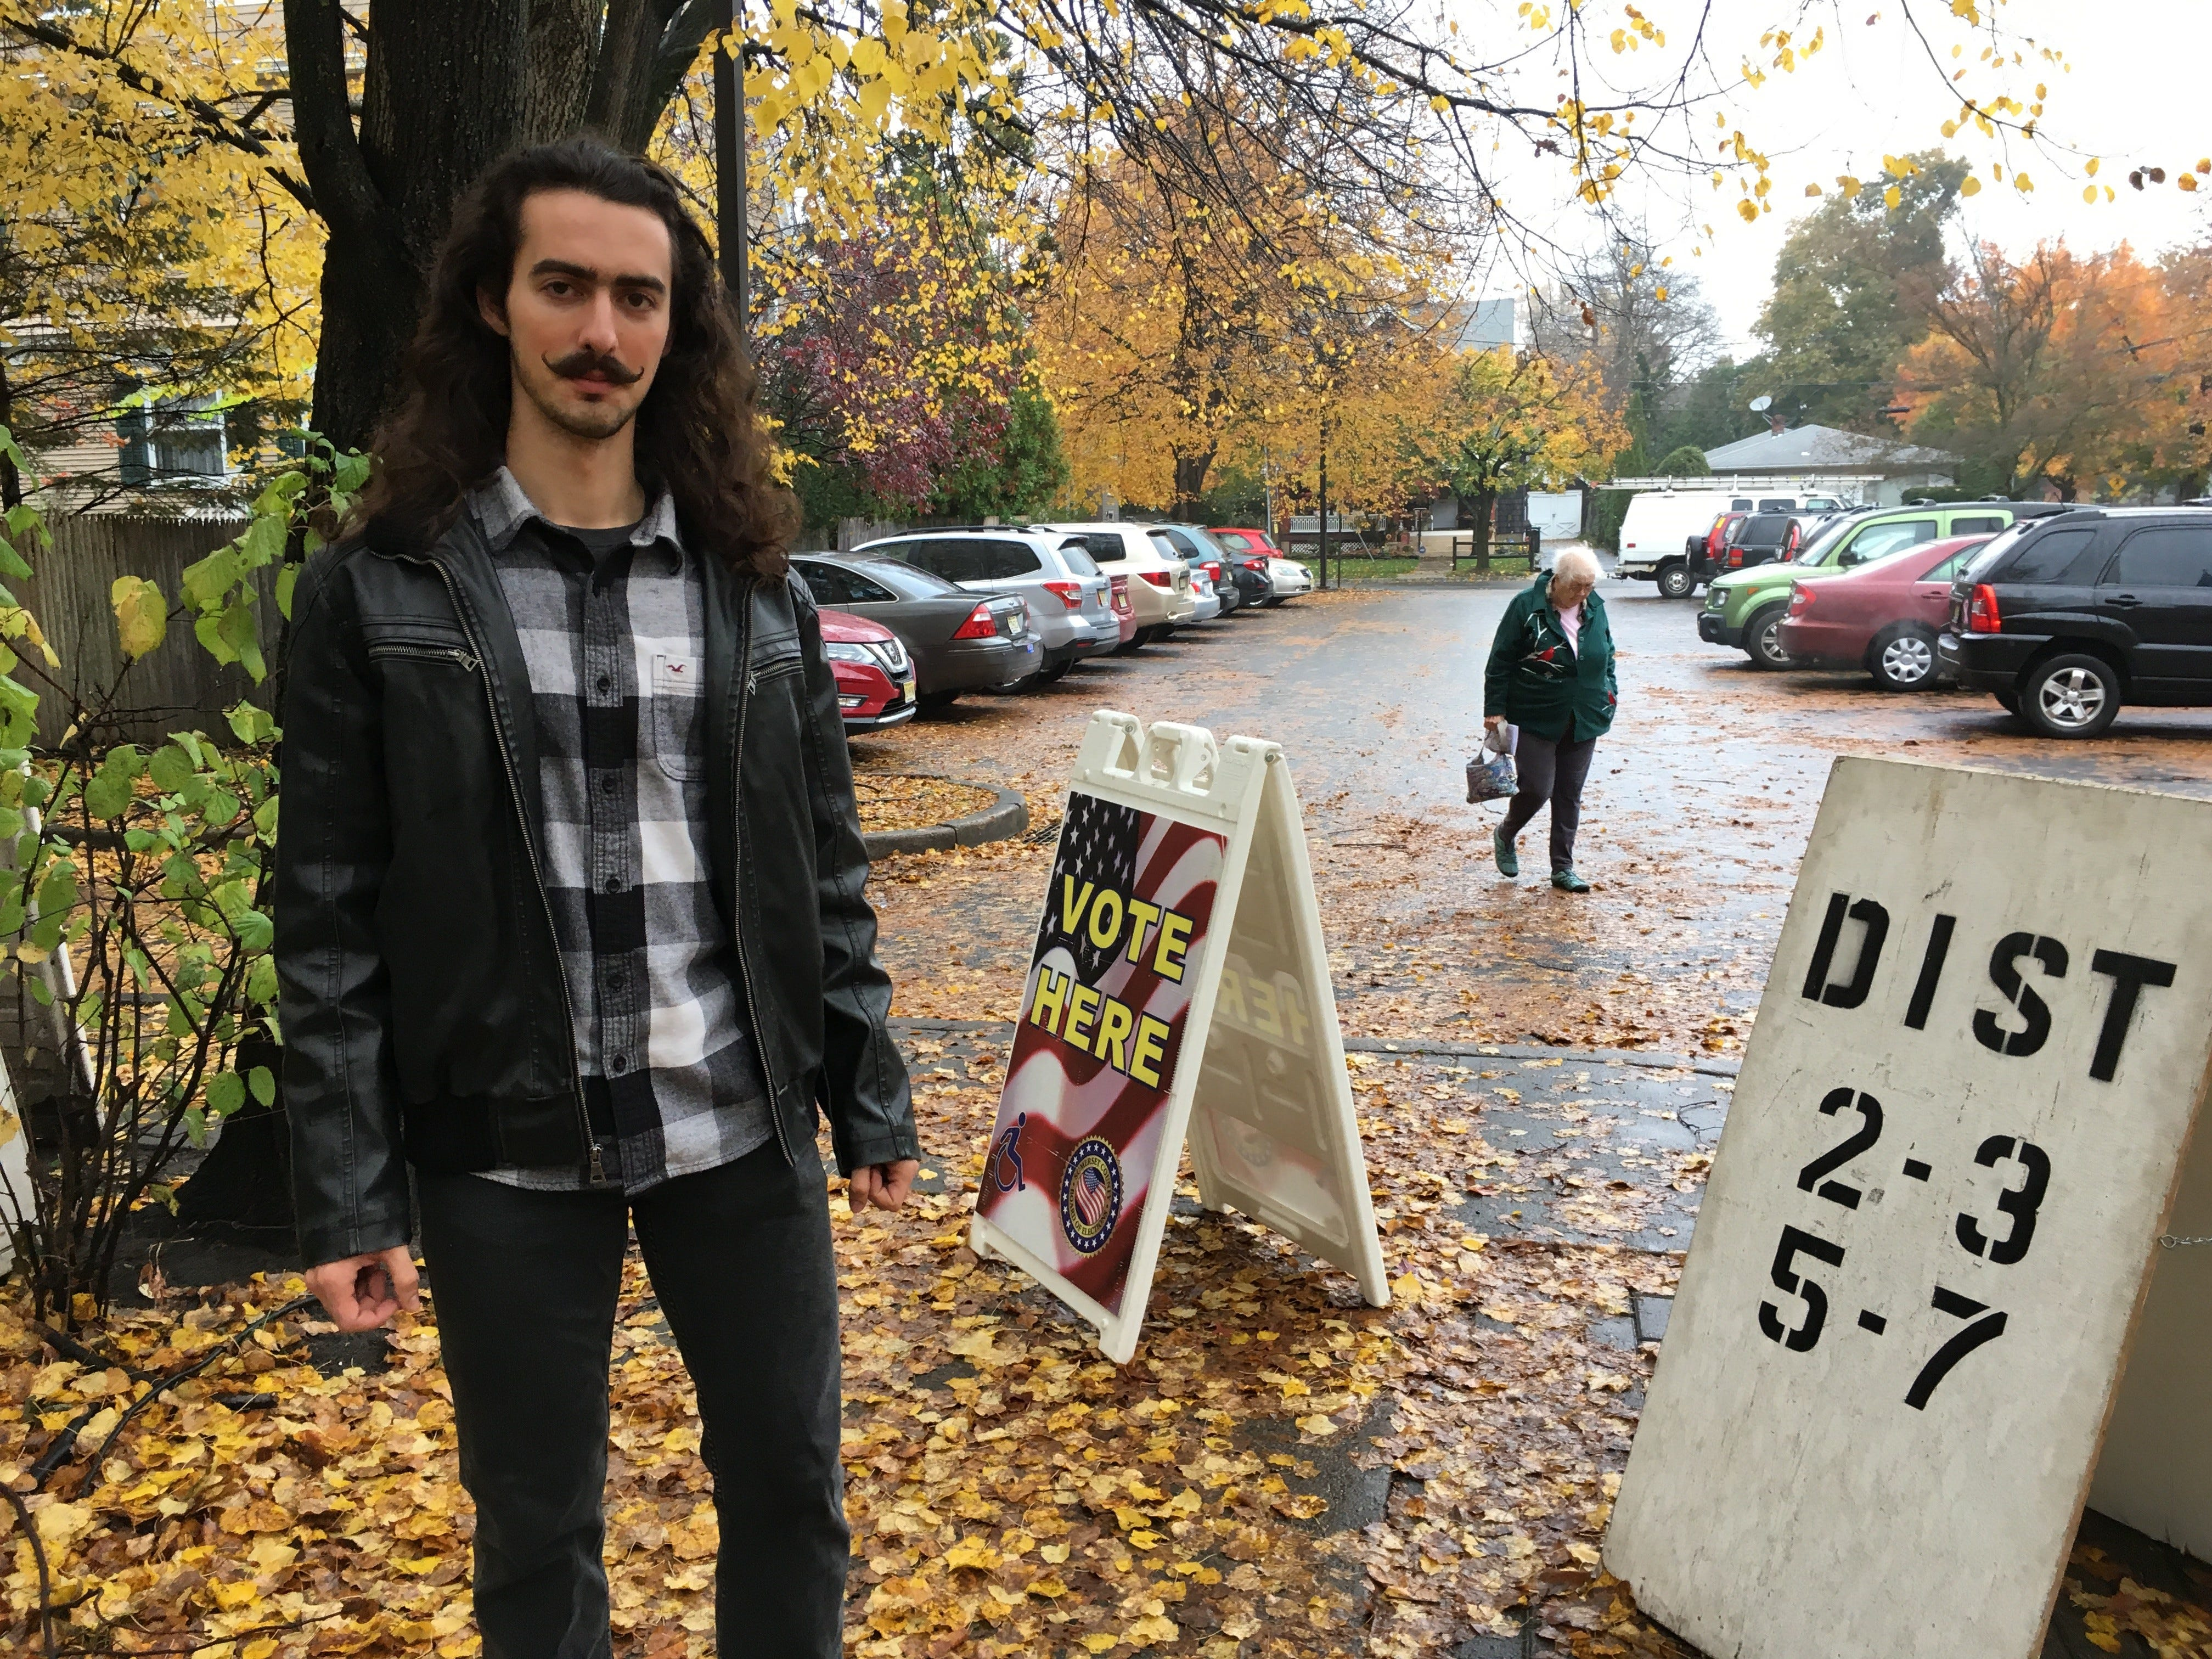 Seps Gharavi, a student at Rutgers, voted at the Presbyterian Church of Bound Brook on Nov. 6.